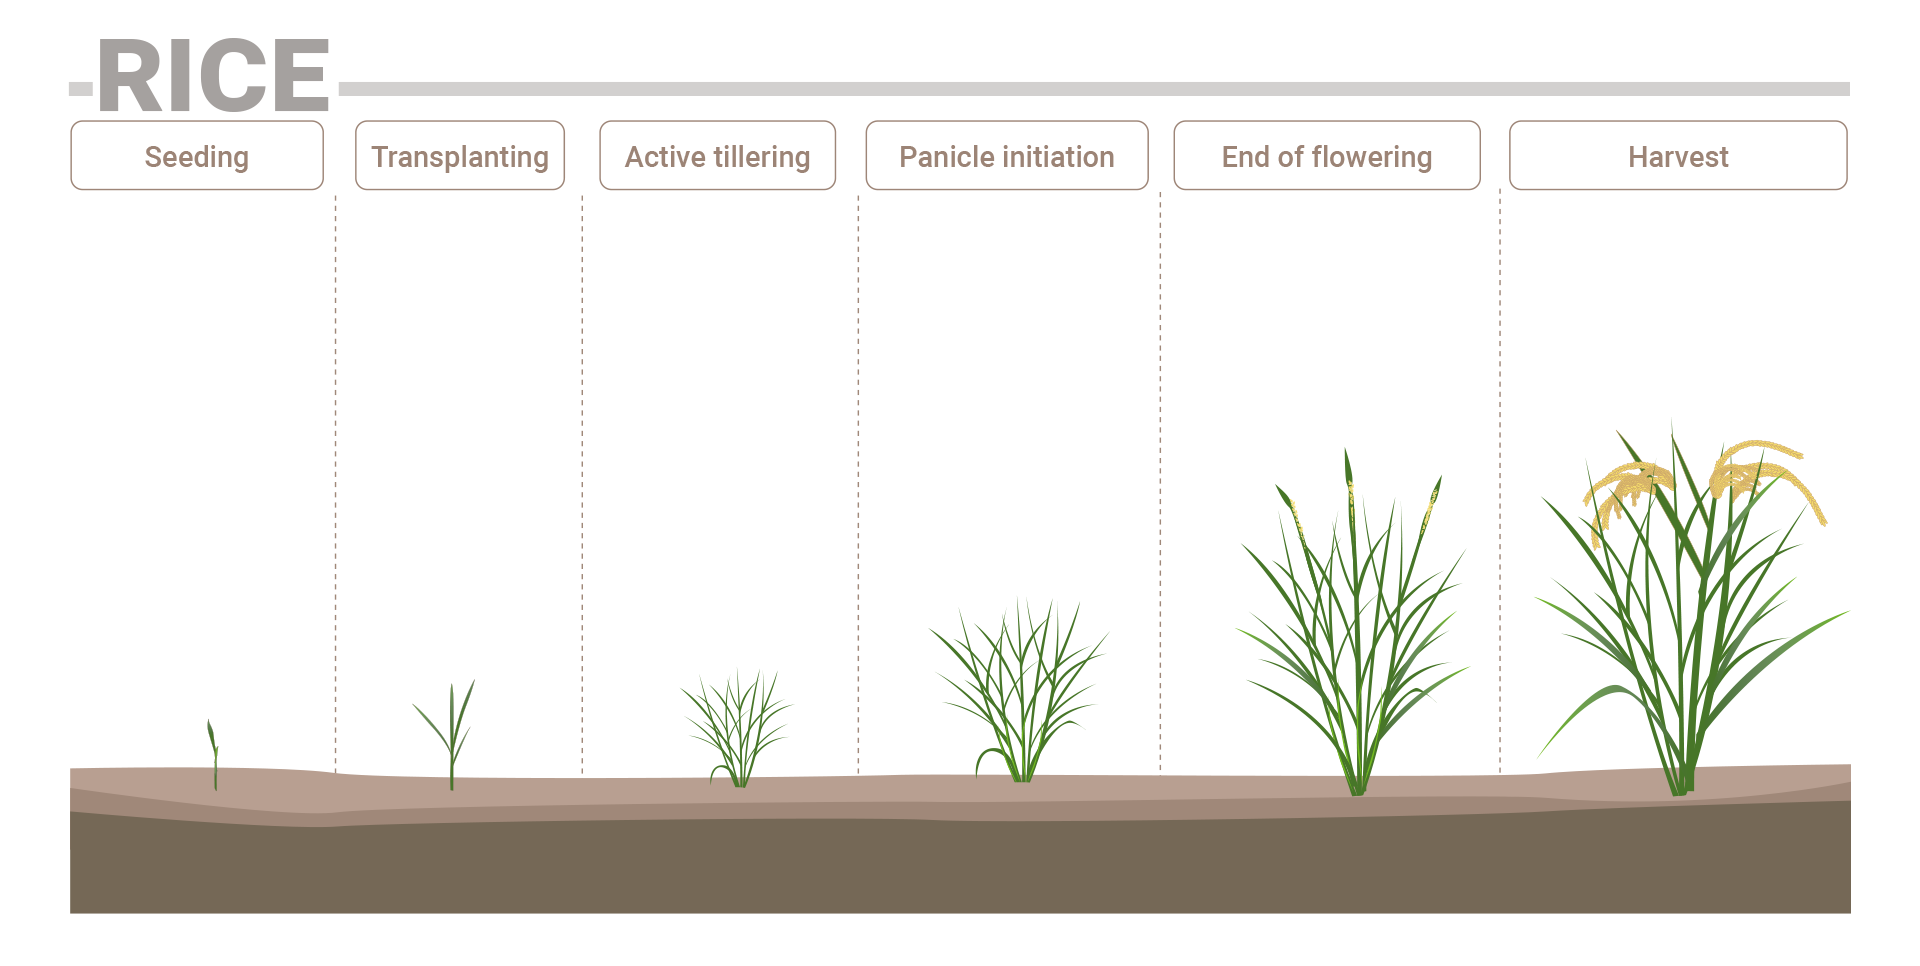 Rice phenological phases